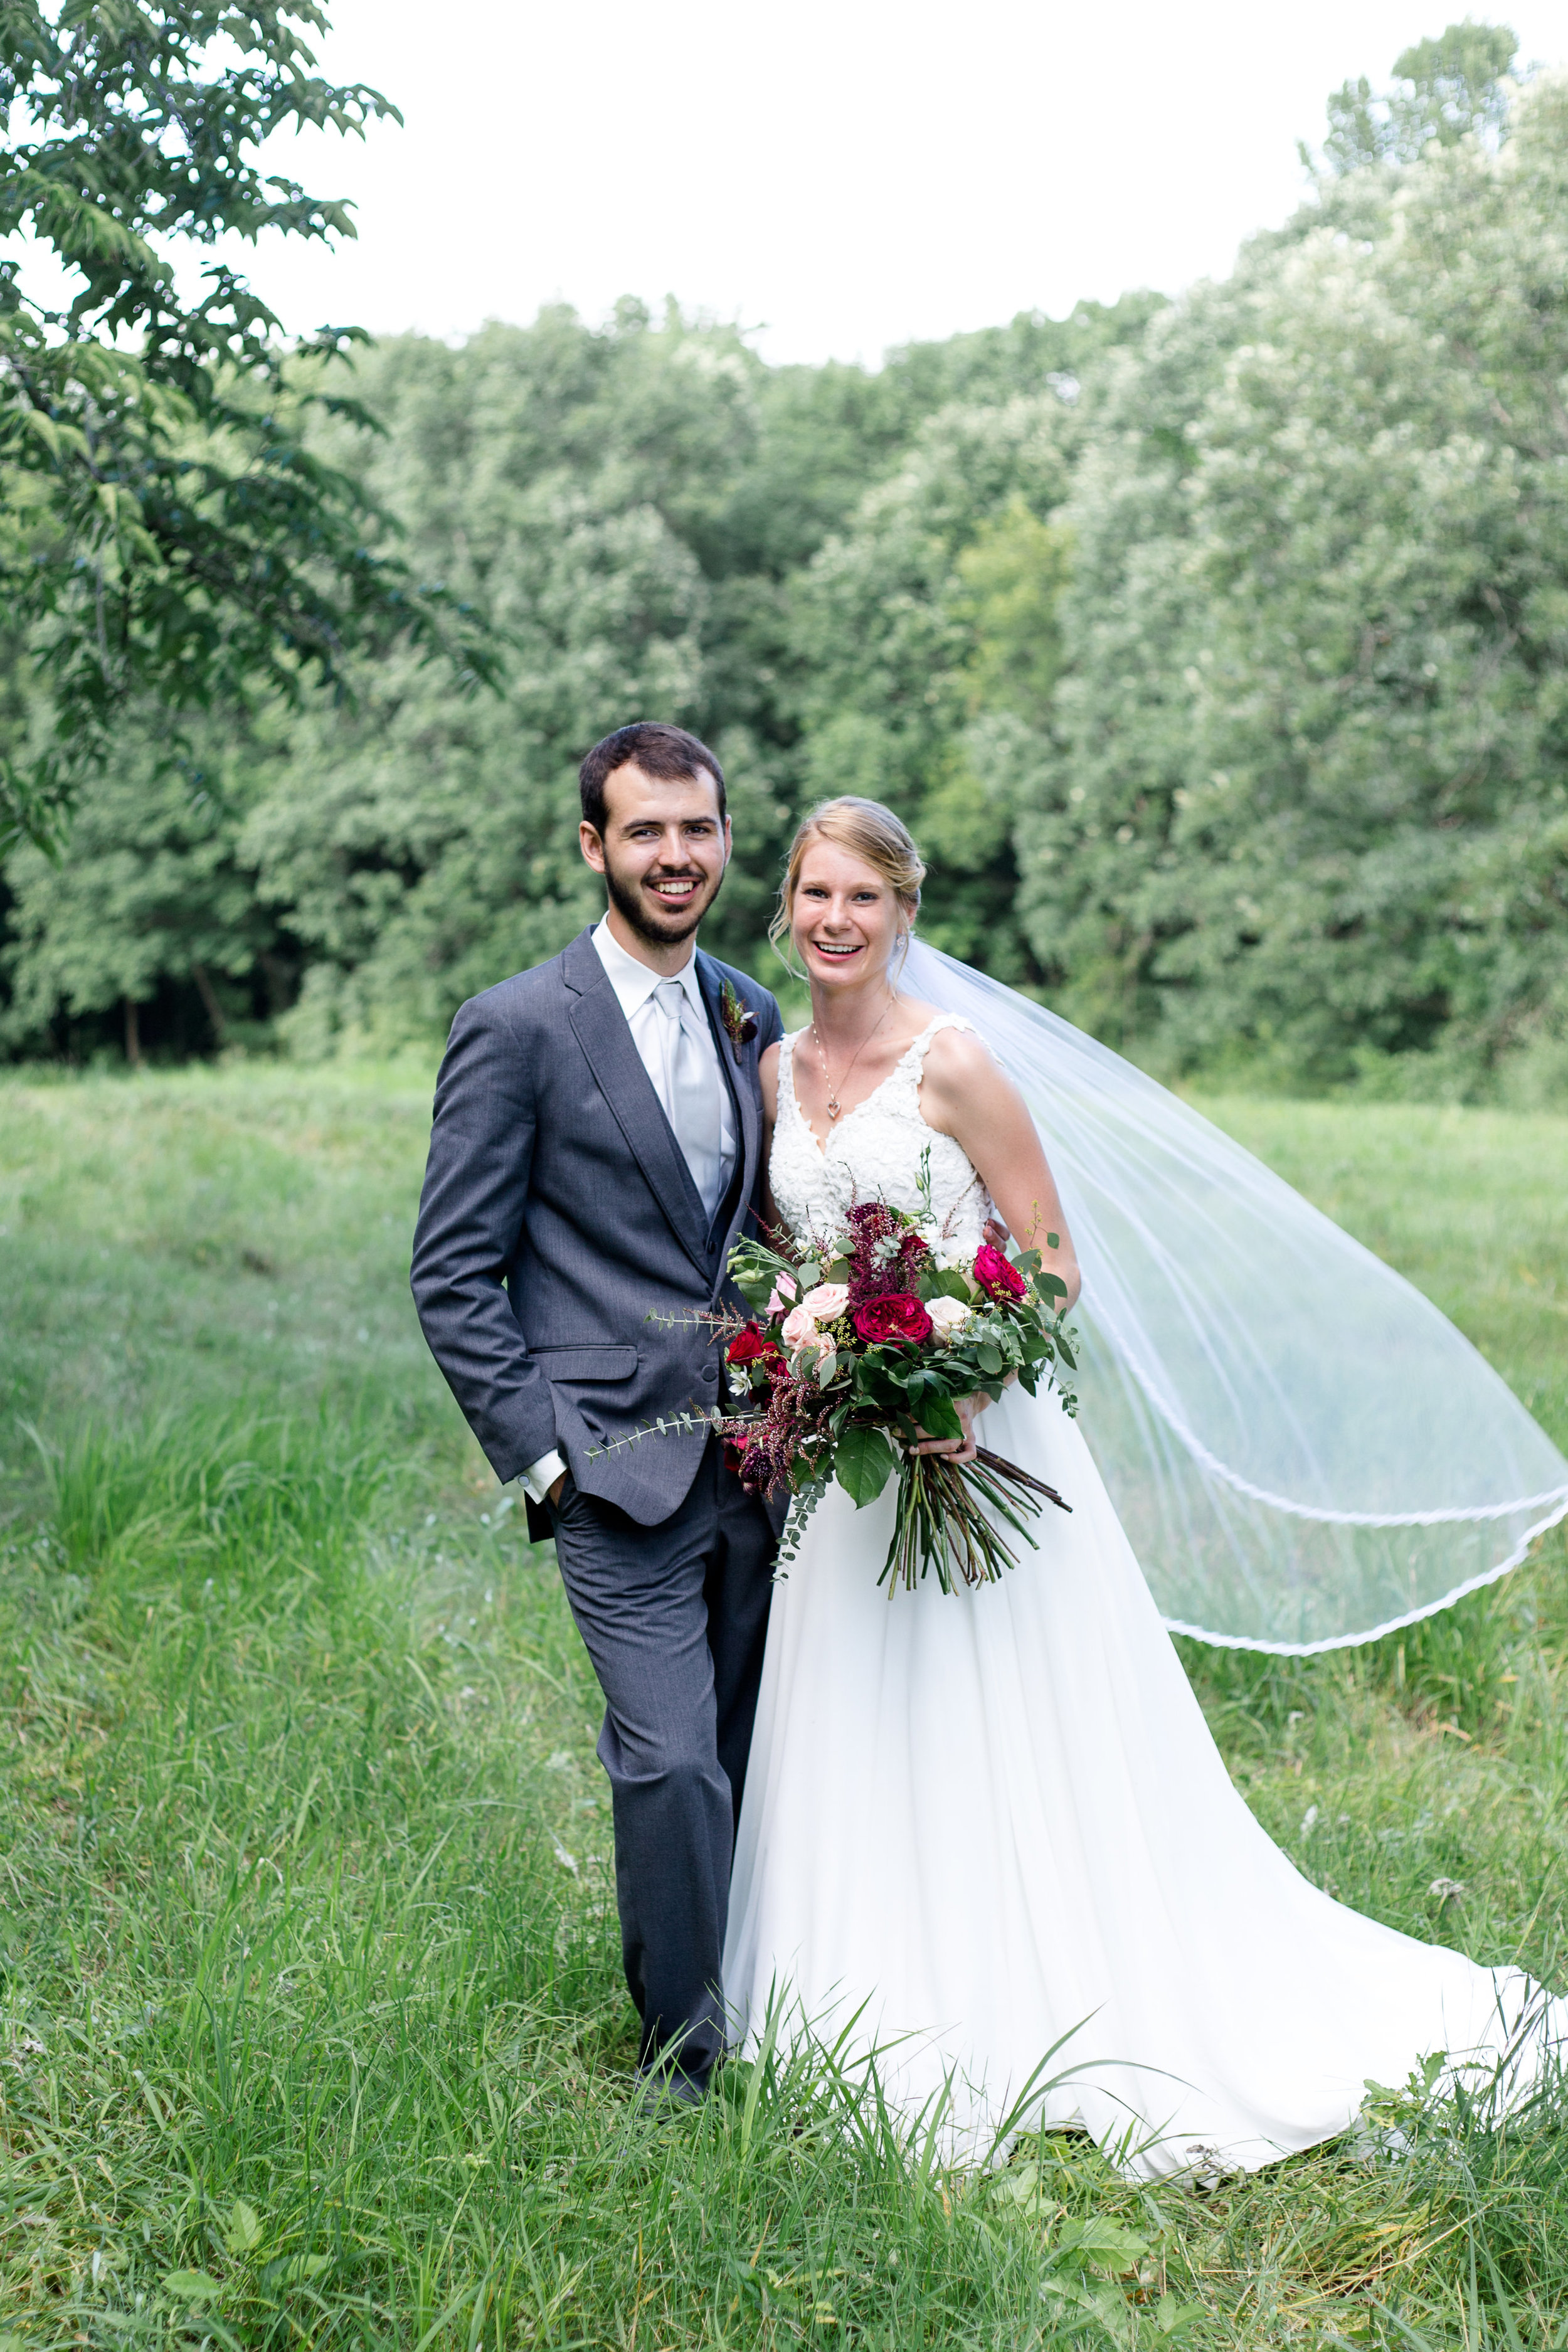 """krista + elijah - """"Thank you, Maggie, for all you did to make my wedding GORGEOUS! The flowers you designed and provided were far better than I could have ever imagined. We received so many compliments about them on our wedding day. I loved looking down at my beautiful bouquet throughout the day. WOW.Thank you for thinking through every detail with us and getting each piece labeled, where it needed to go, and communicating with us well. You helped make our wedding day go so smoothly and added the color, florals, and decor it needed to make it extra special.Each time my mom and I met with you at the store I knew we were in good hands. Thank you for being patient with us and taking on our vision and making our flowers unique. You are so talented and kind. I will 100% recommend Thistles to others in the future!"""" - Krista S.[Lindsey Klyn Photogrpahy & Design - 2018]"""